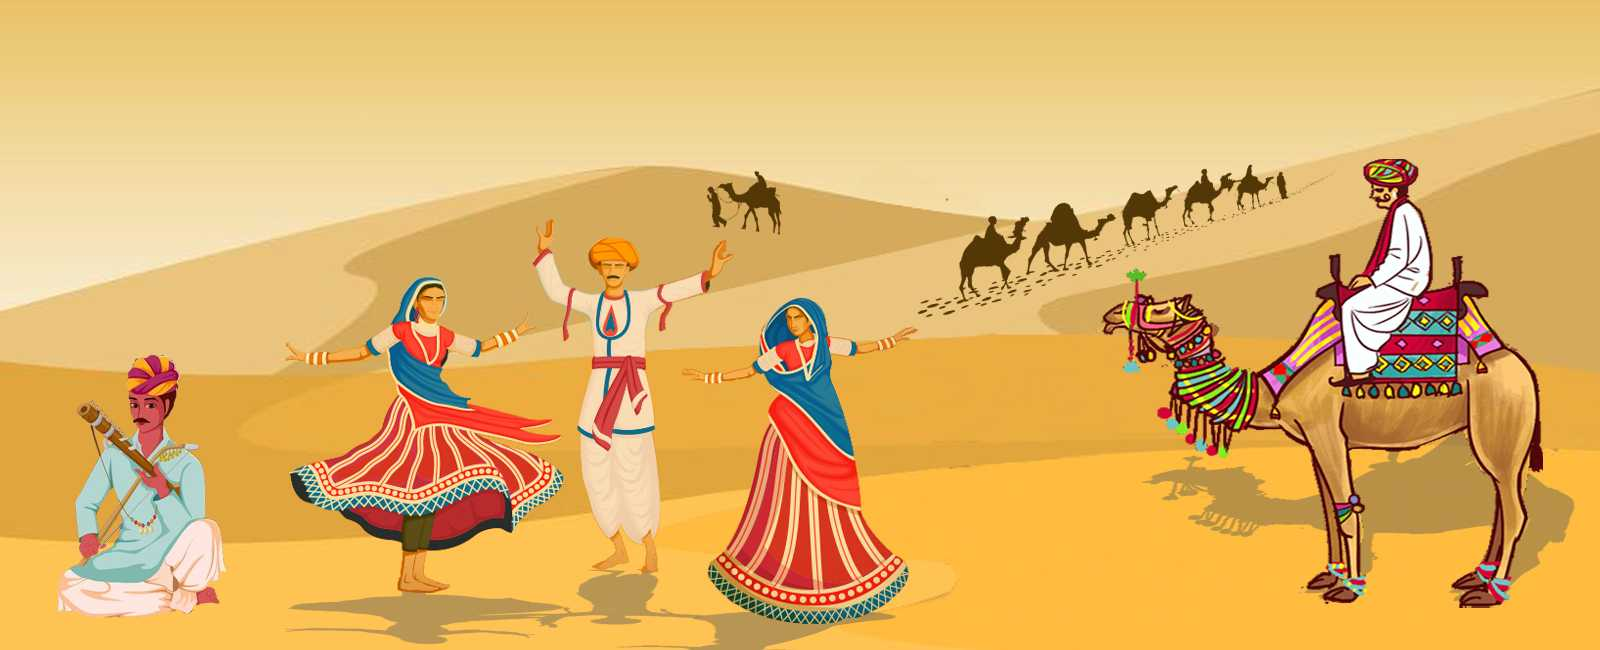 Jaisalmer Budget Tour Packages | Budgeted Tour Jaisalmer